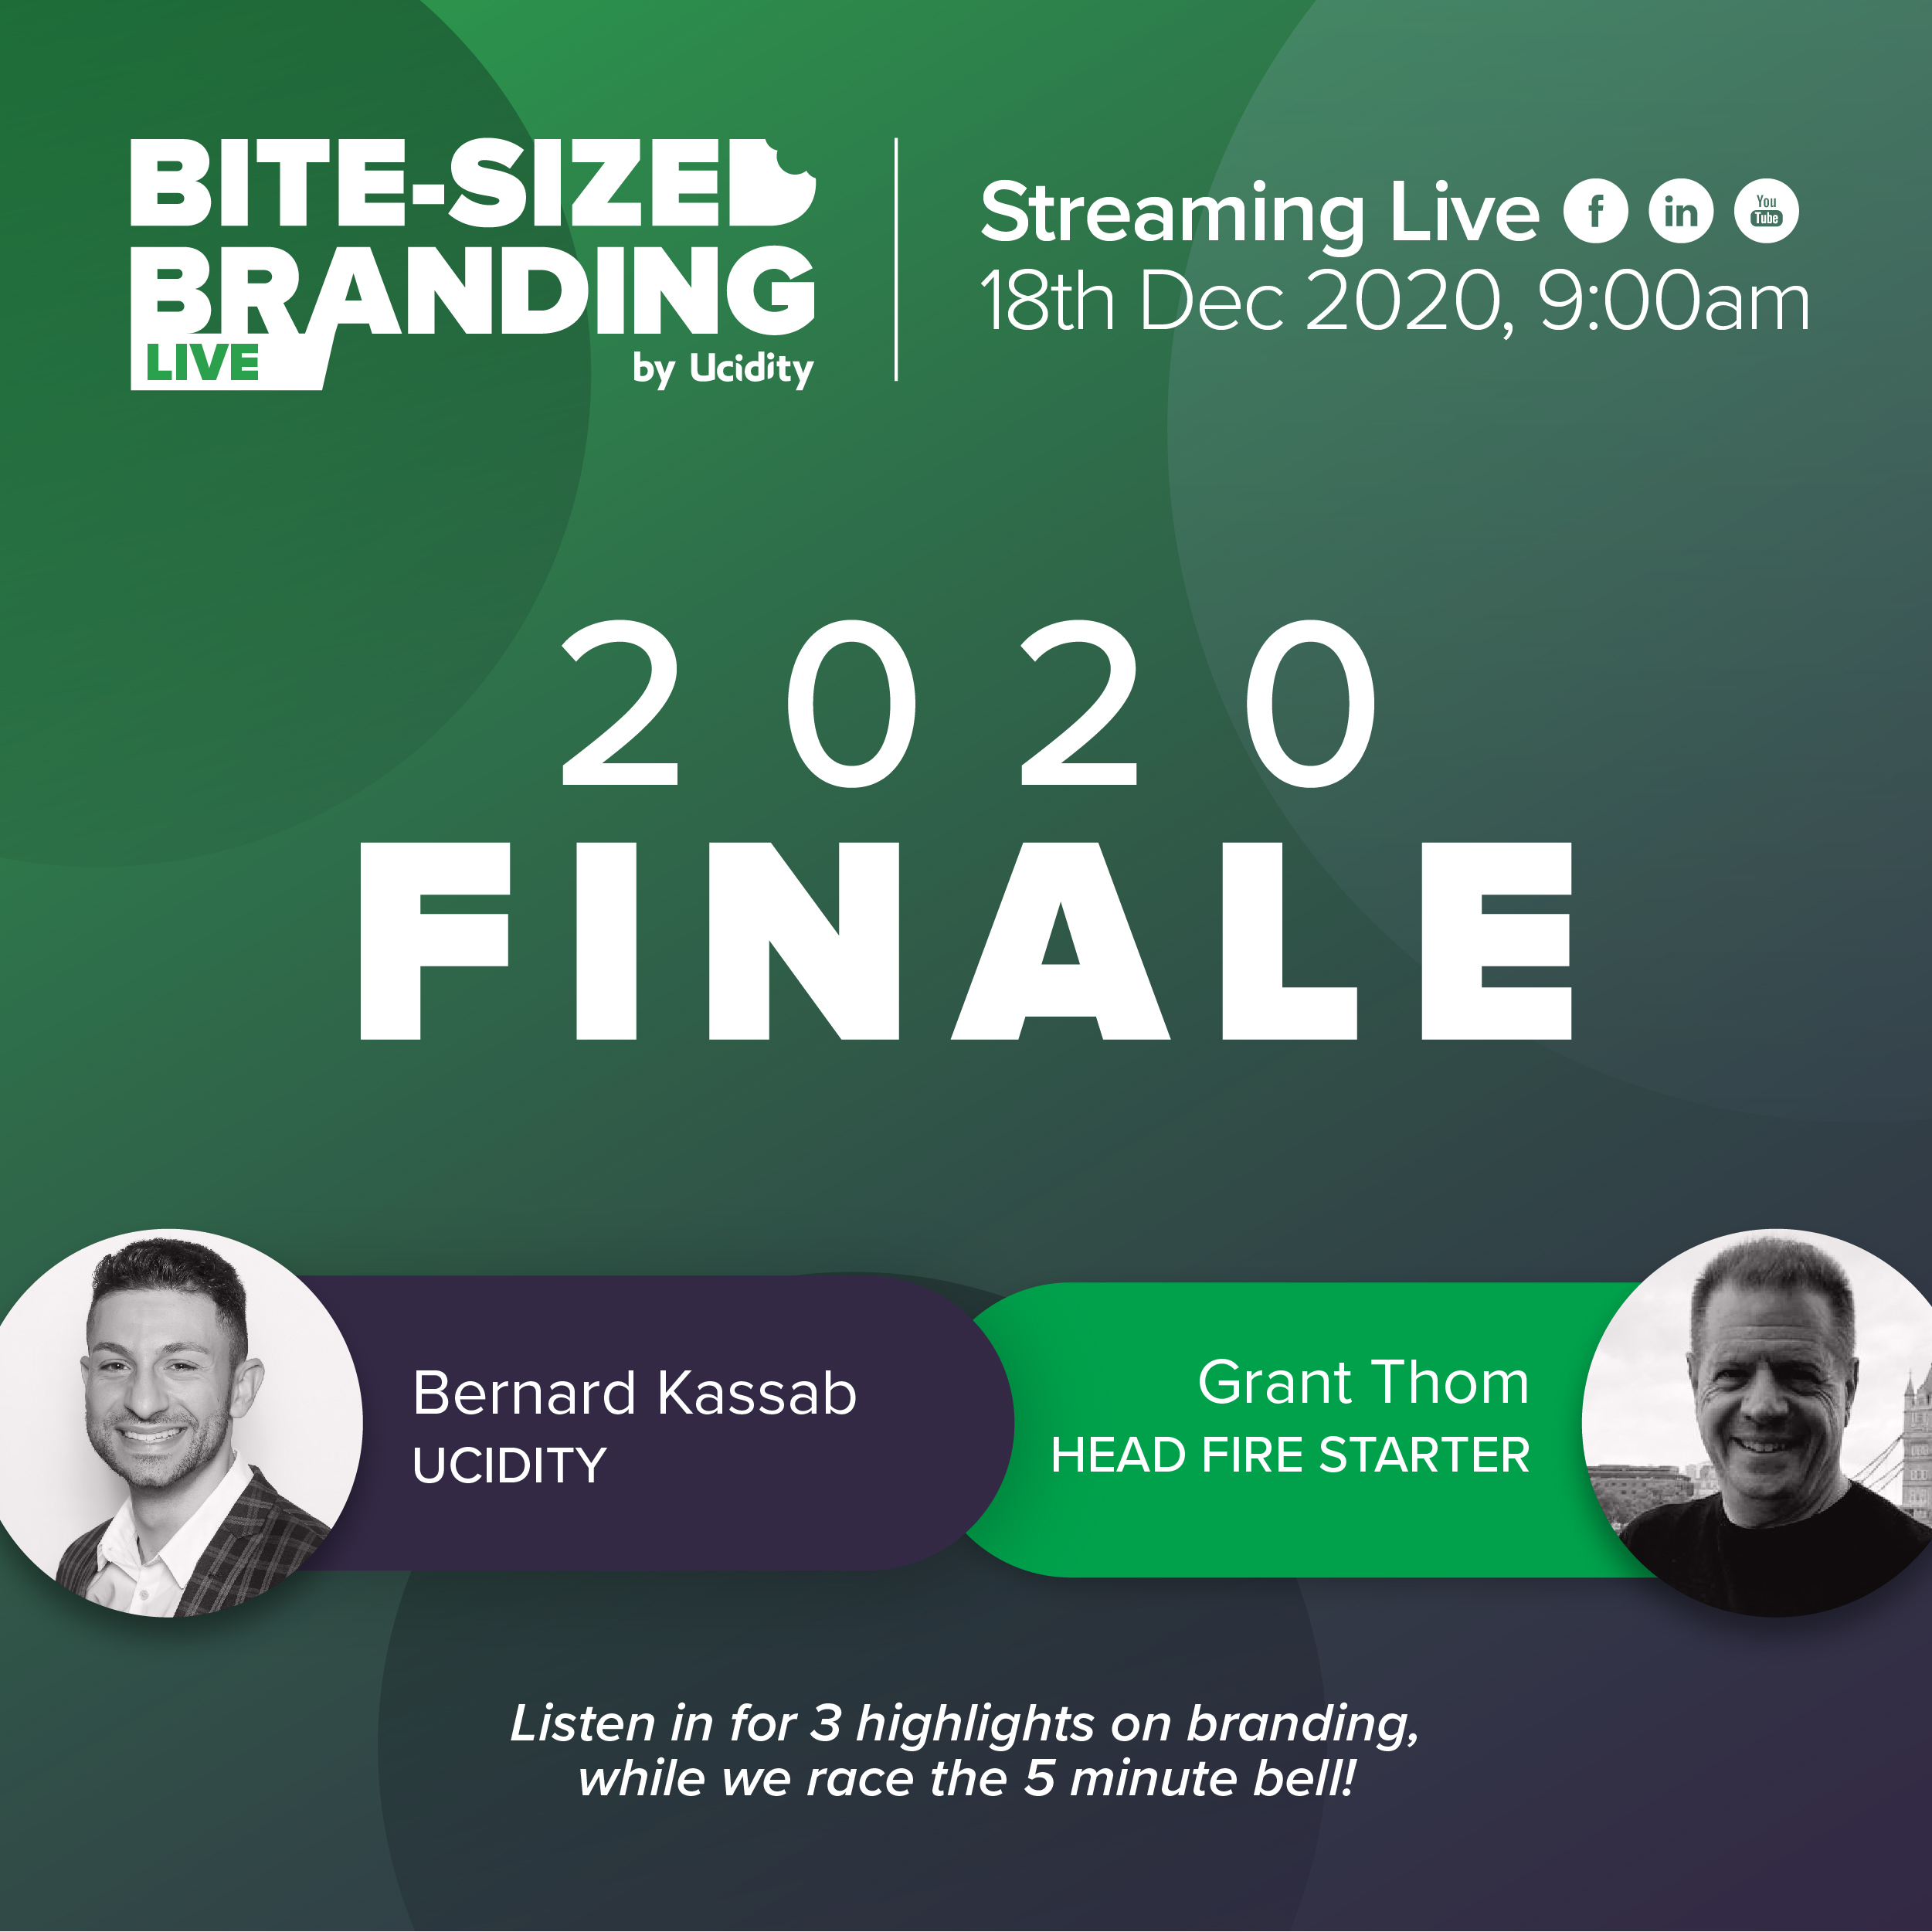 Bite-sized Branding Episode 32 - What To Look For In 2021 And Our Favorite Marketing Ideas